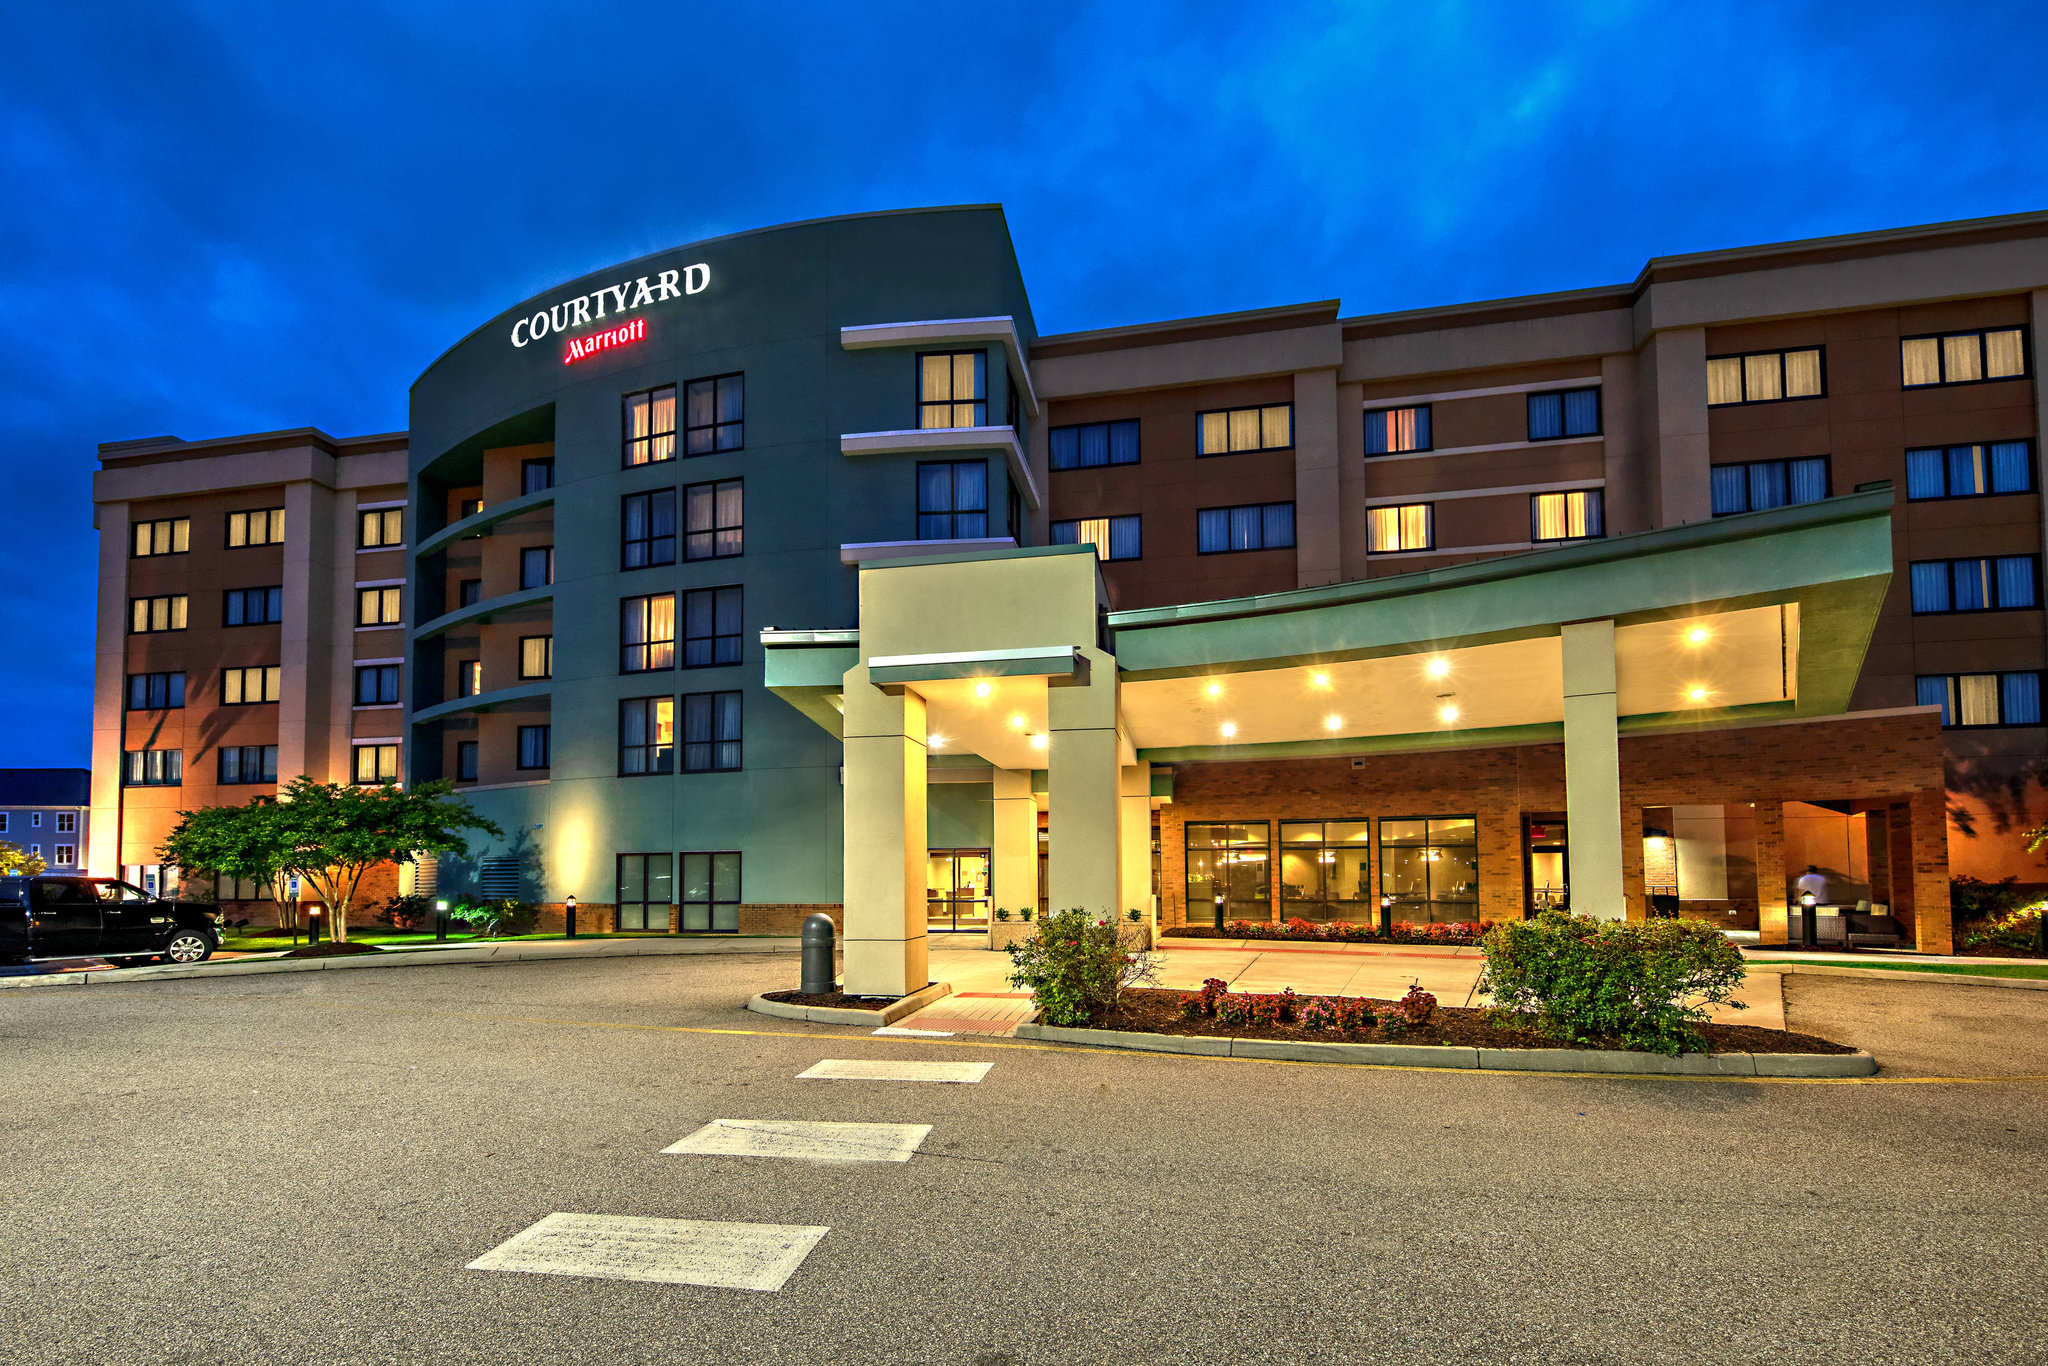 Courtyard Marriott Newport News Airport